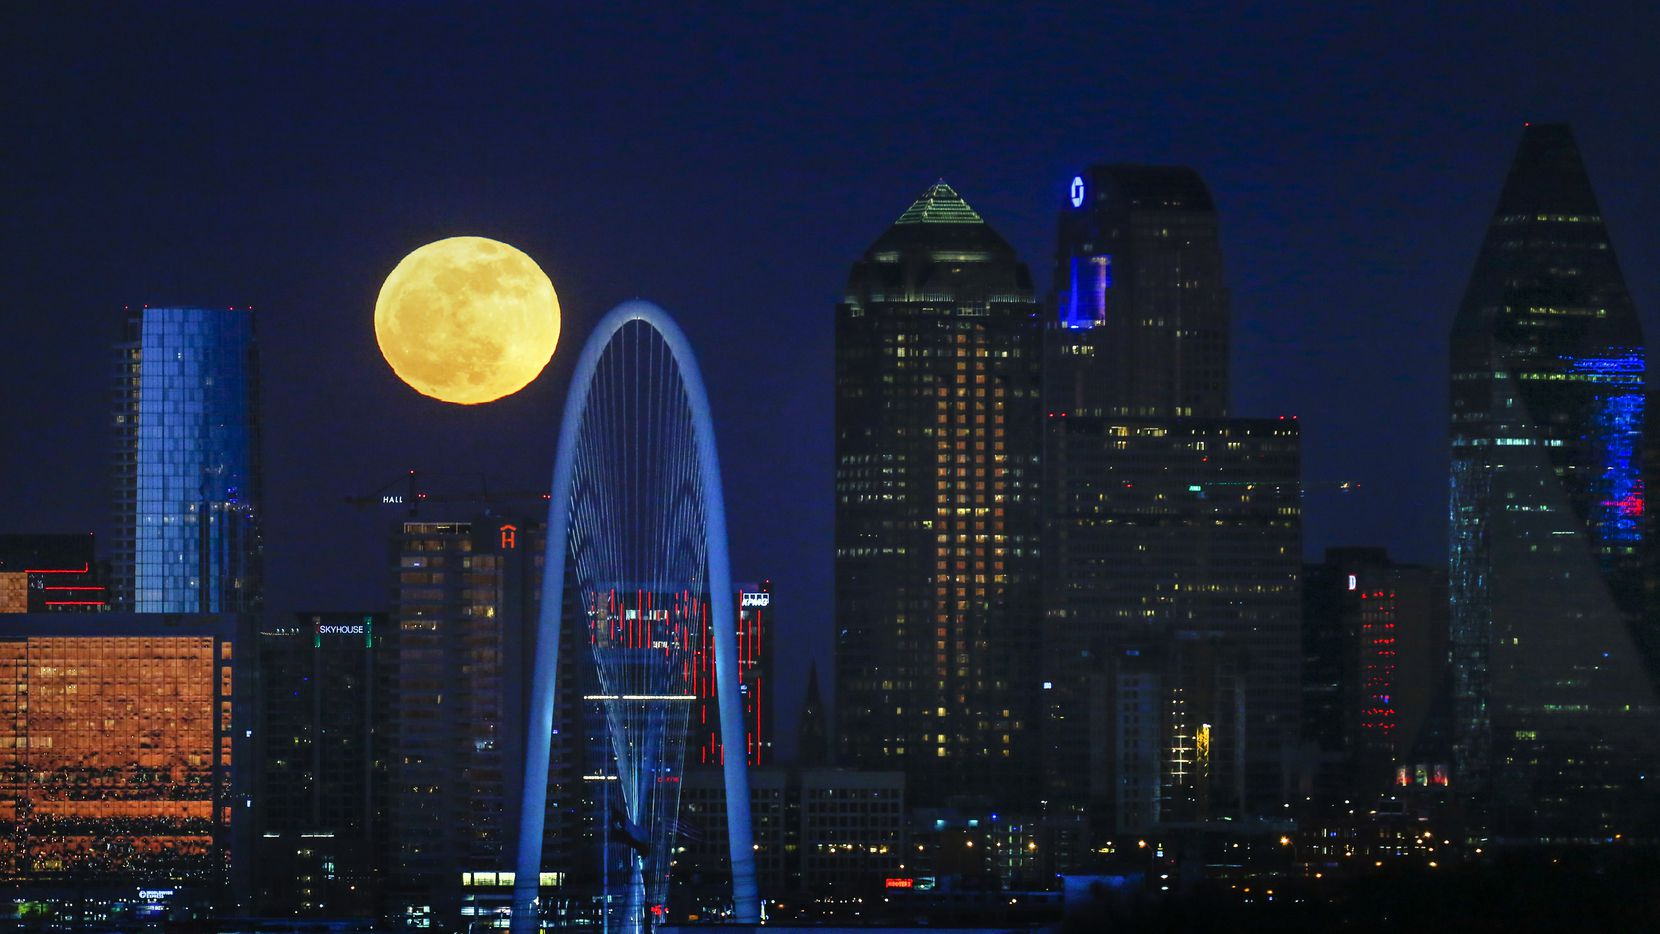 The full moon rises over the Dallas skyline in December 2018.